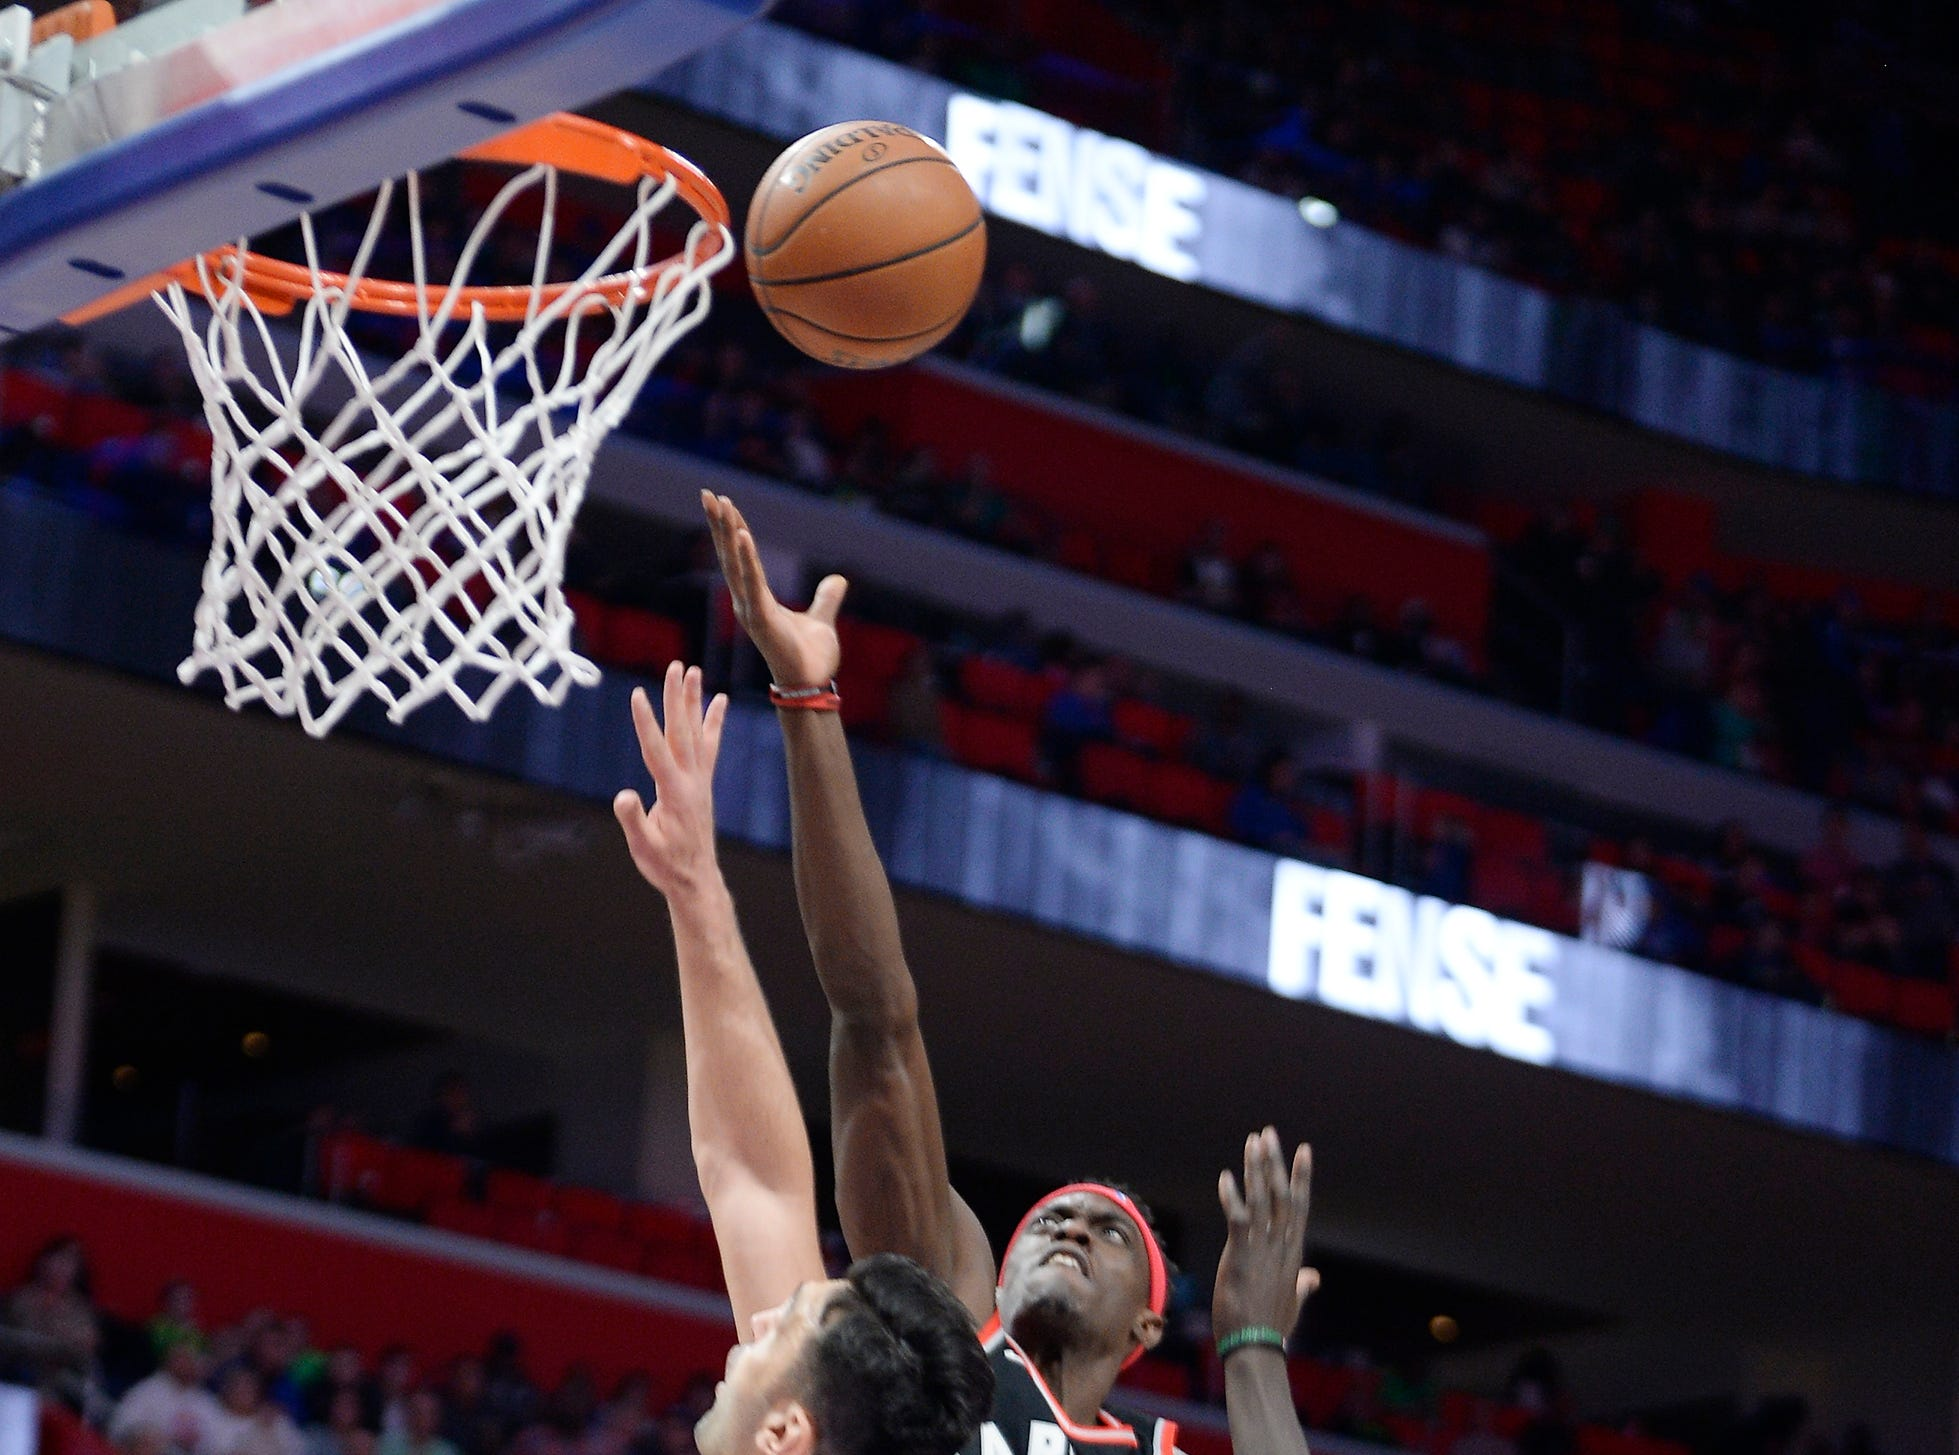 Raptors' Pascal Siakam scores over Pistons' Zaza Pachulia in the second quarter.